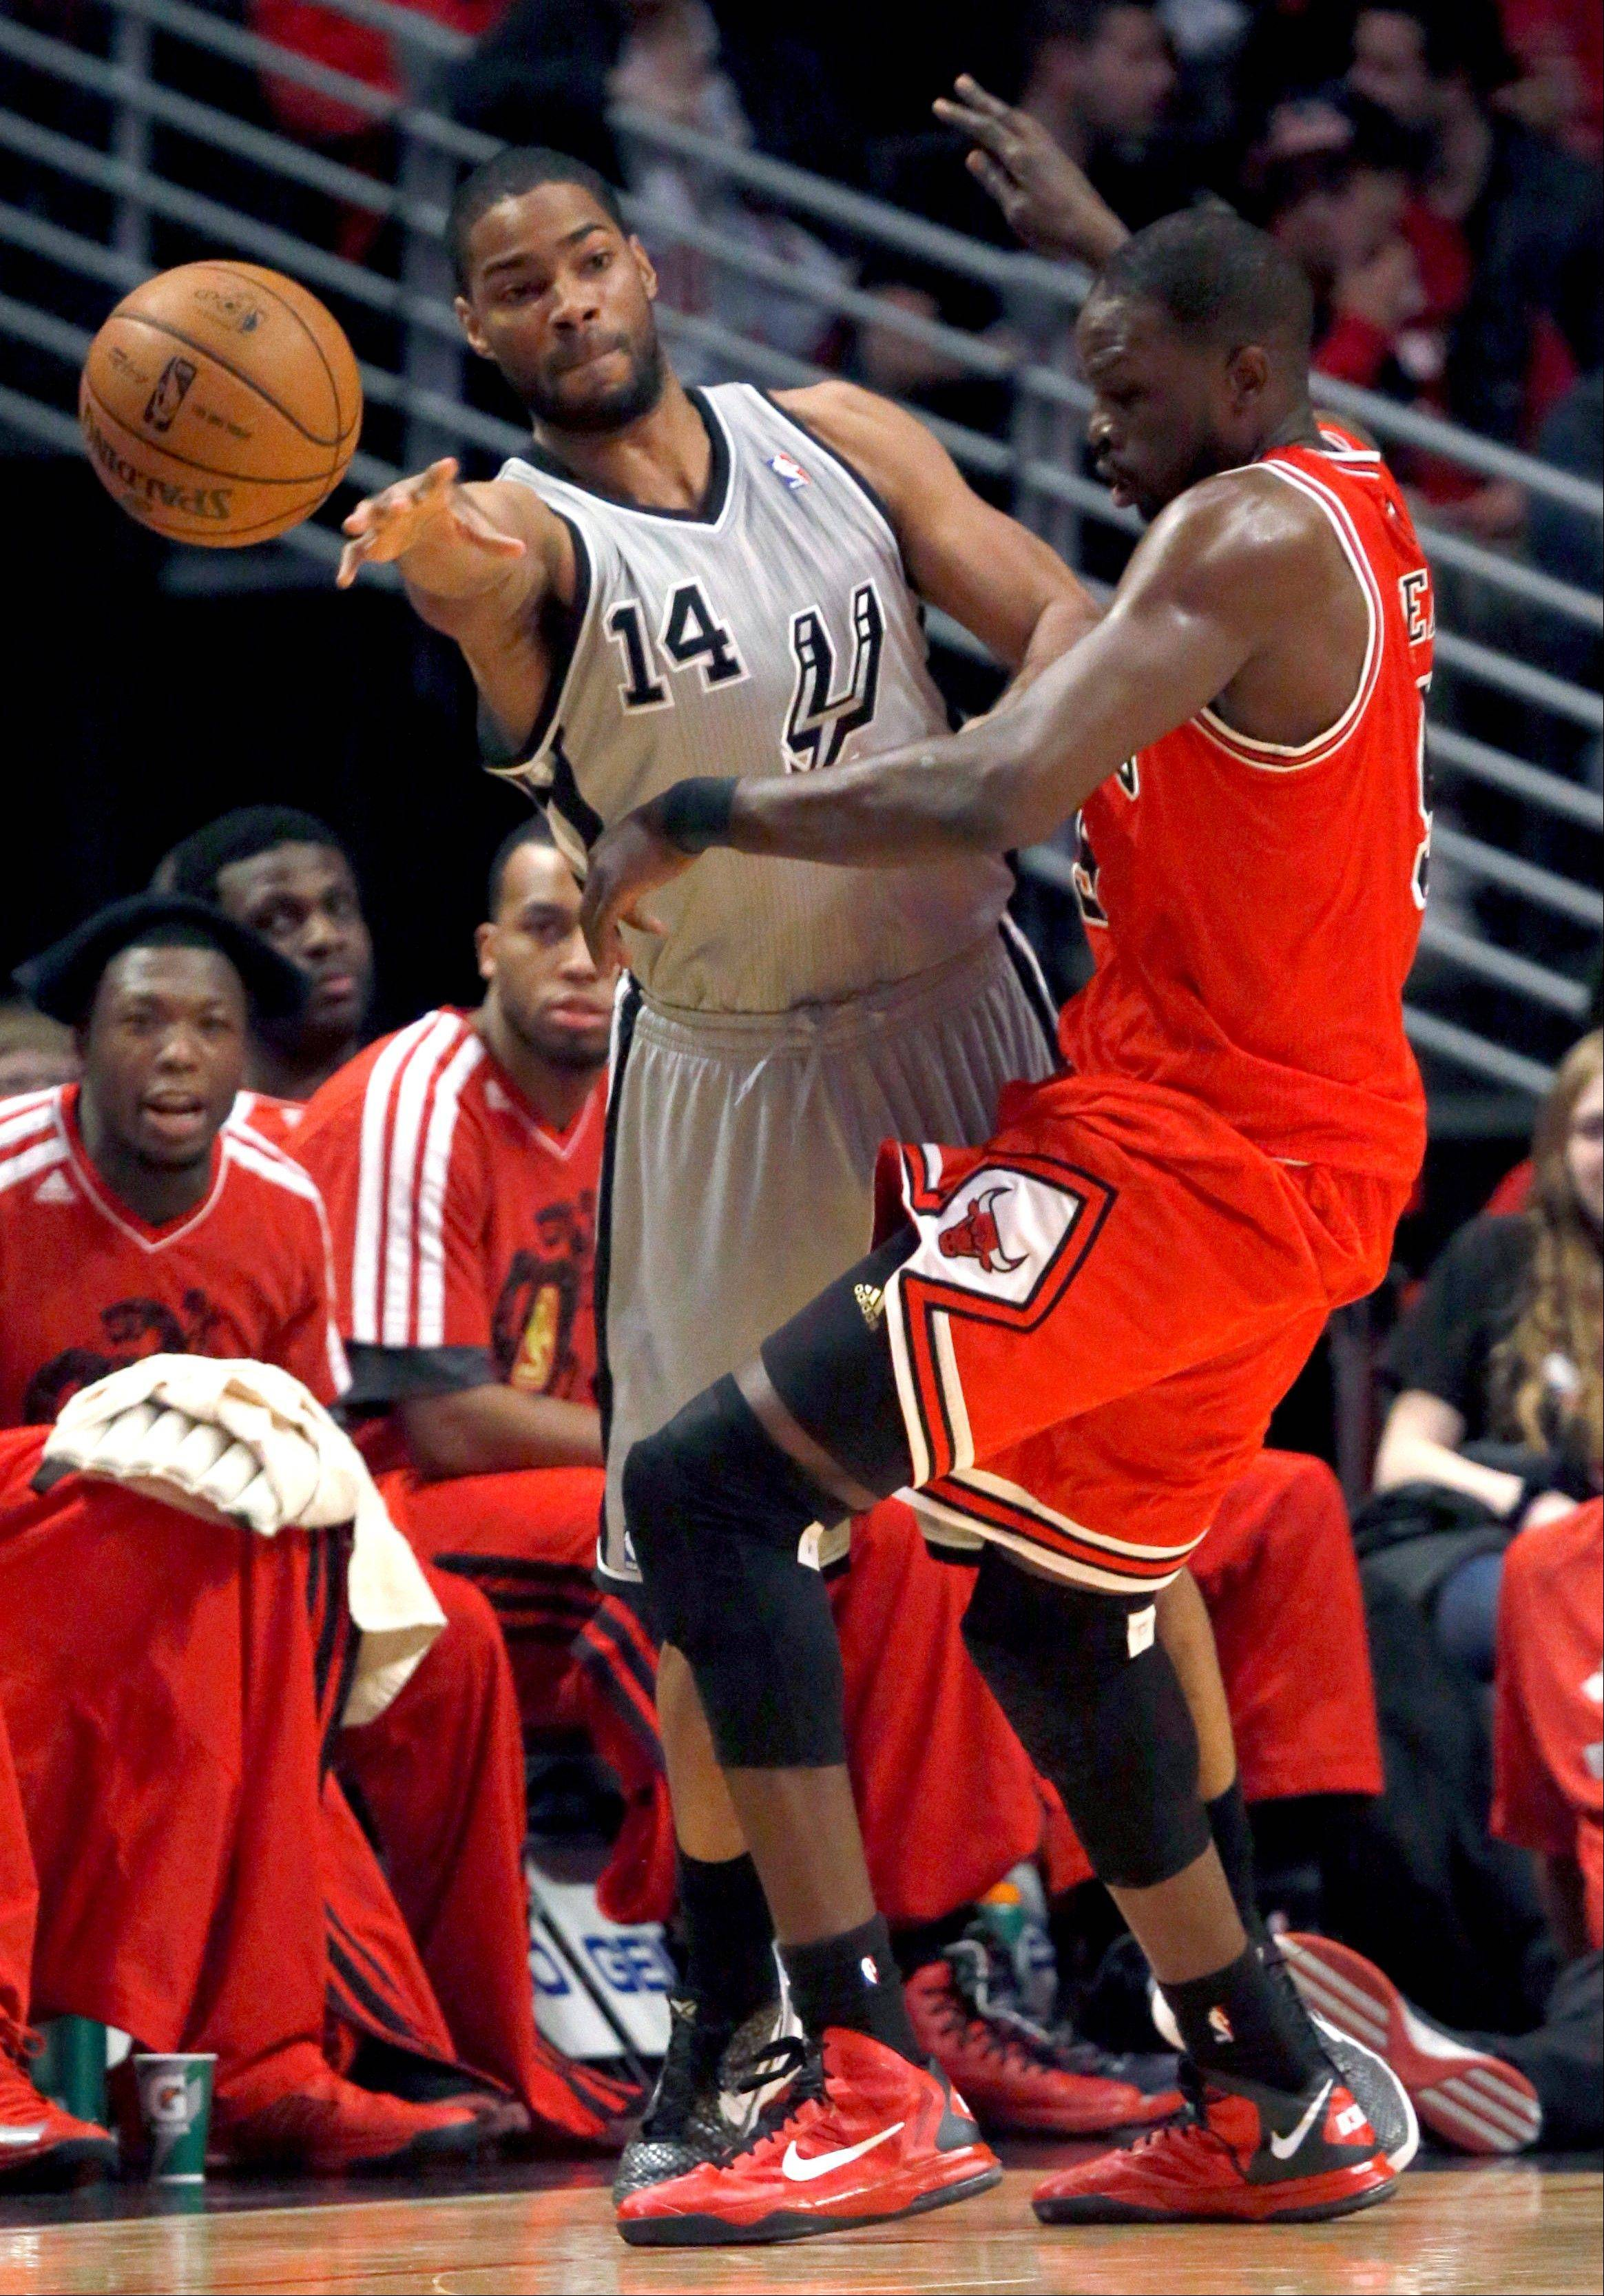 San Antonio Spurs guard Gary Neal (14) passes the ball past Chicago Bulls forward Luol Deng during the first half of an NBA basketball game, Monday, Feb. 11, 2013, in Chicago. (AP Photo/Charles Rex Arbogast)